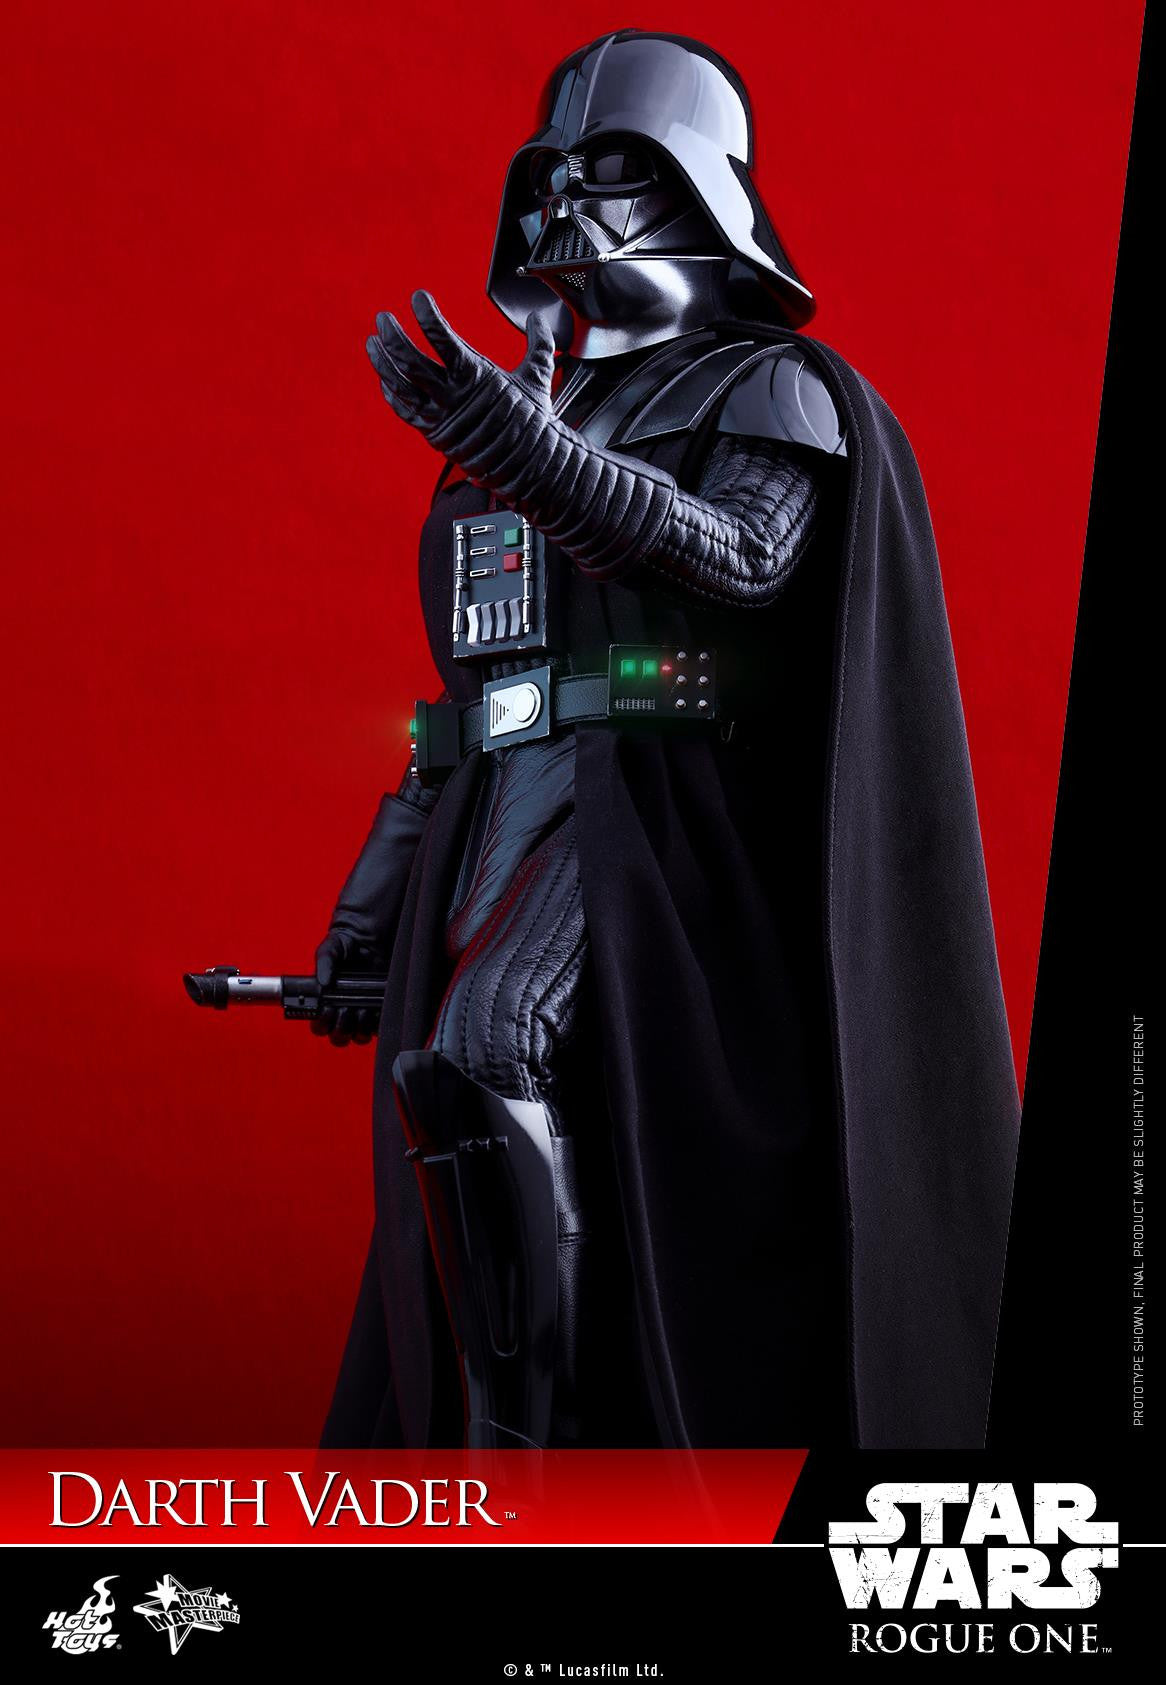 Hot Toys - MMS388 - Rogue One: A Star Wars Story - Darth Vader - Marvelous Toys - 11